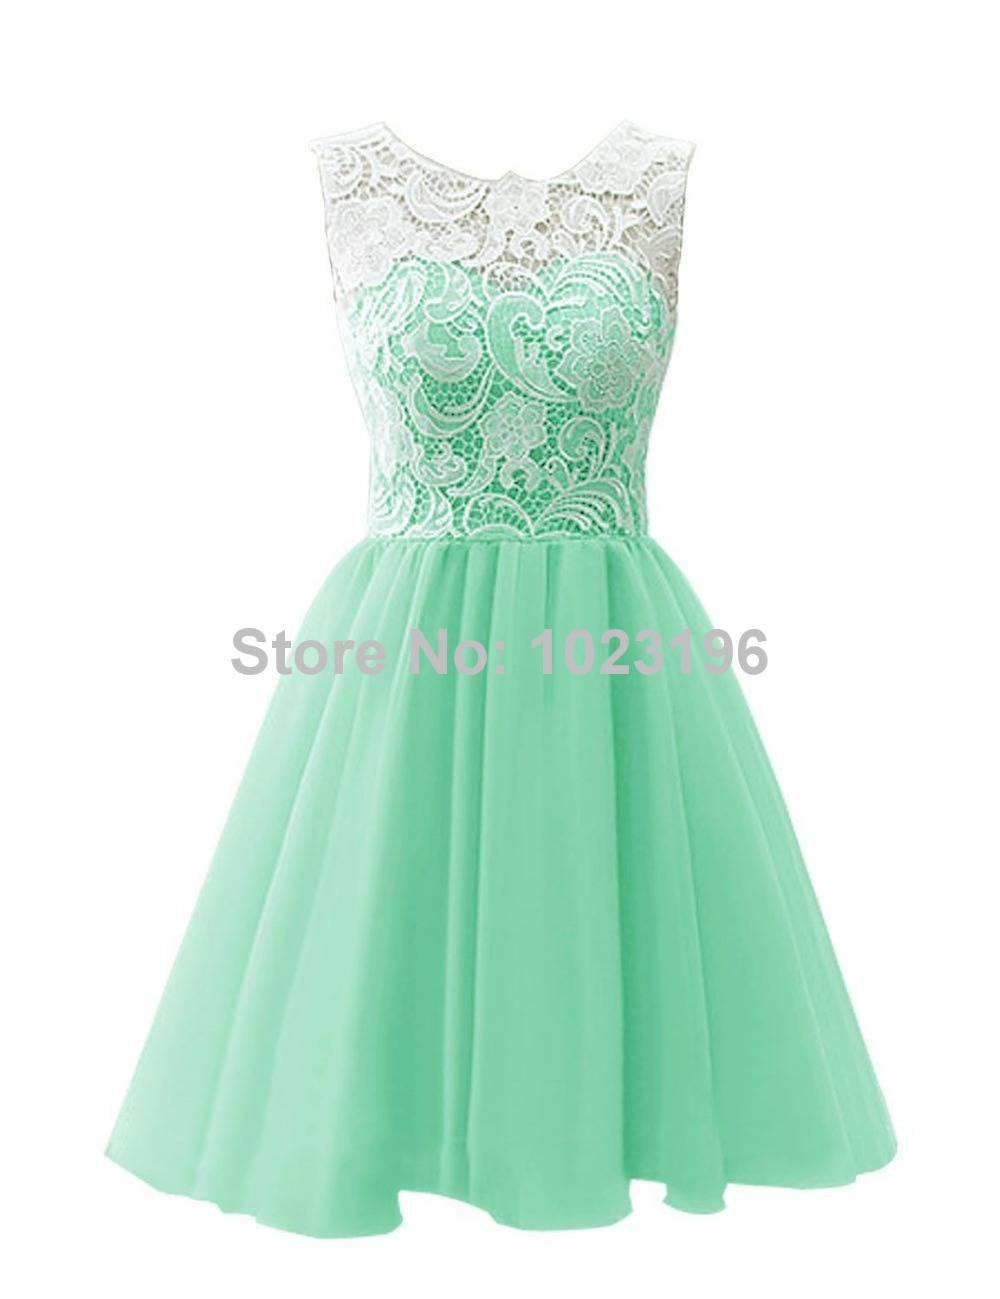 Online Get Cheap Junior Prom Dresses -Aliexpress.com | Alibaba Group